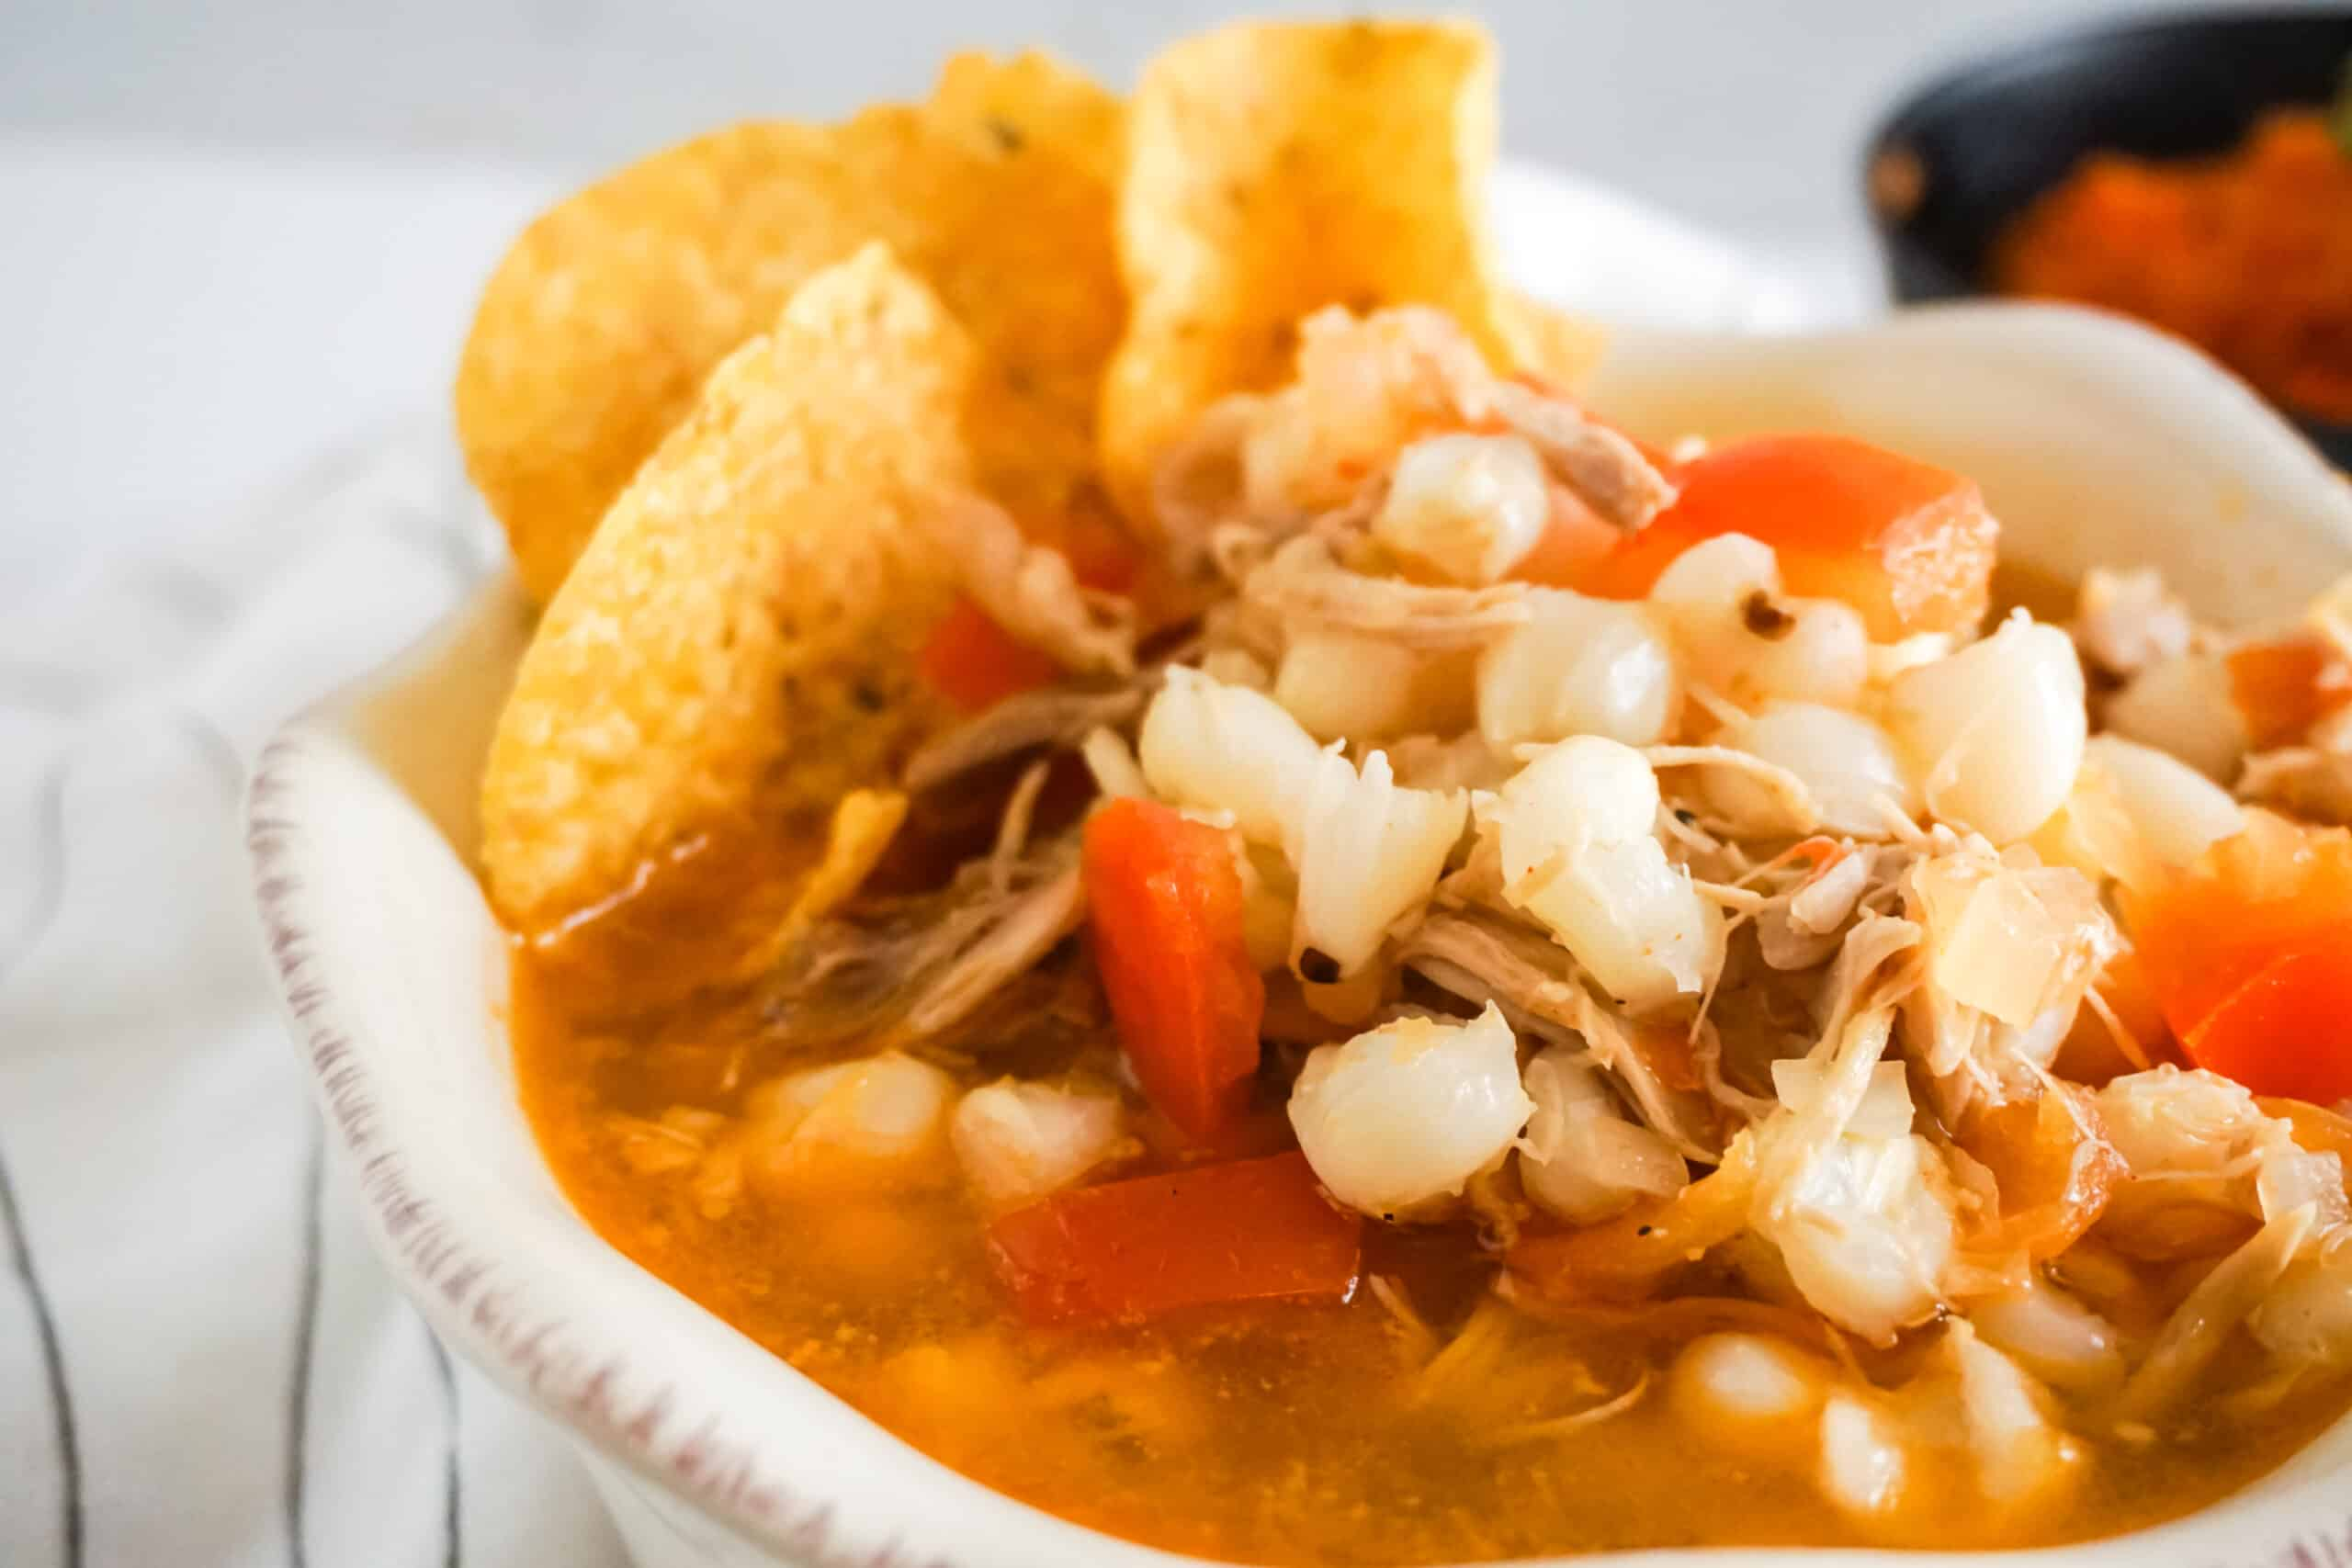 Chicken Posole soup in a white bowl next to rice in a bowl